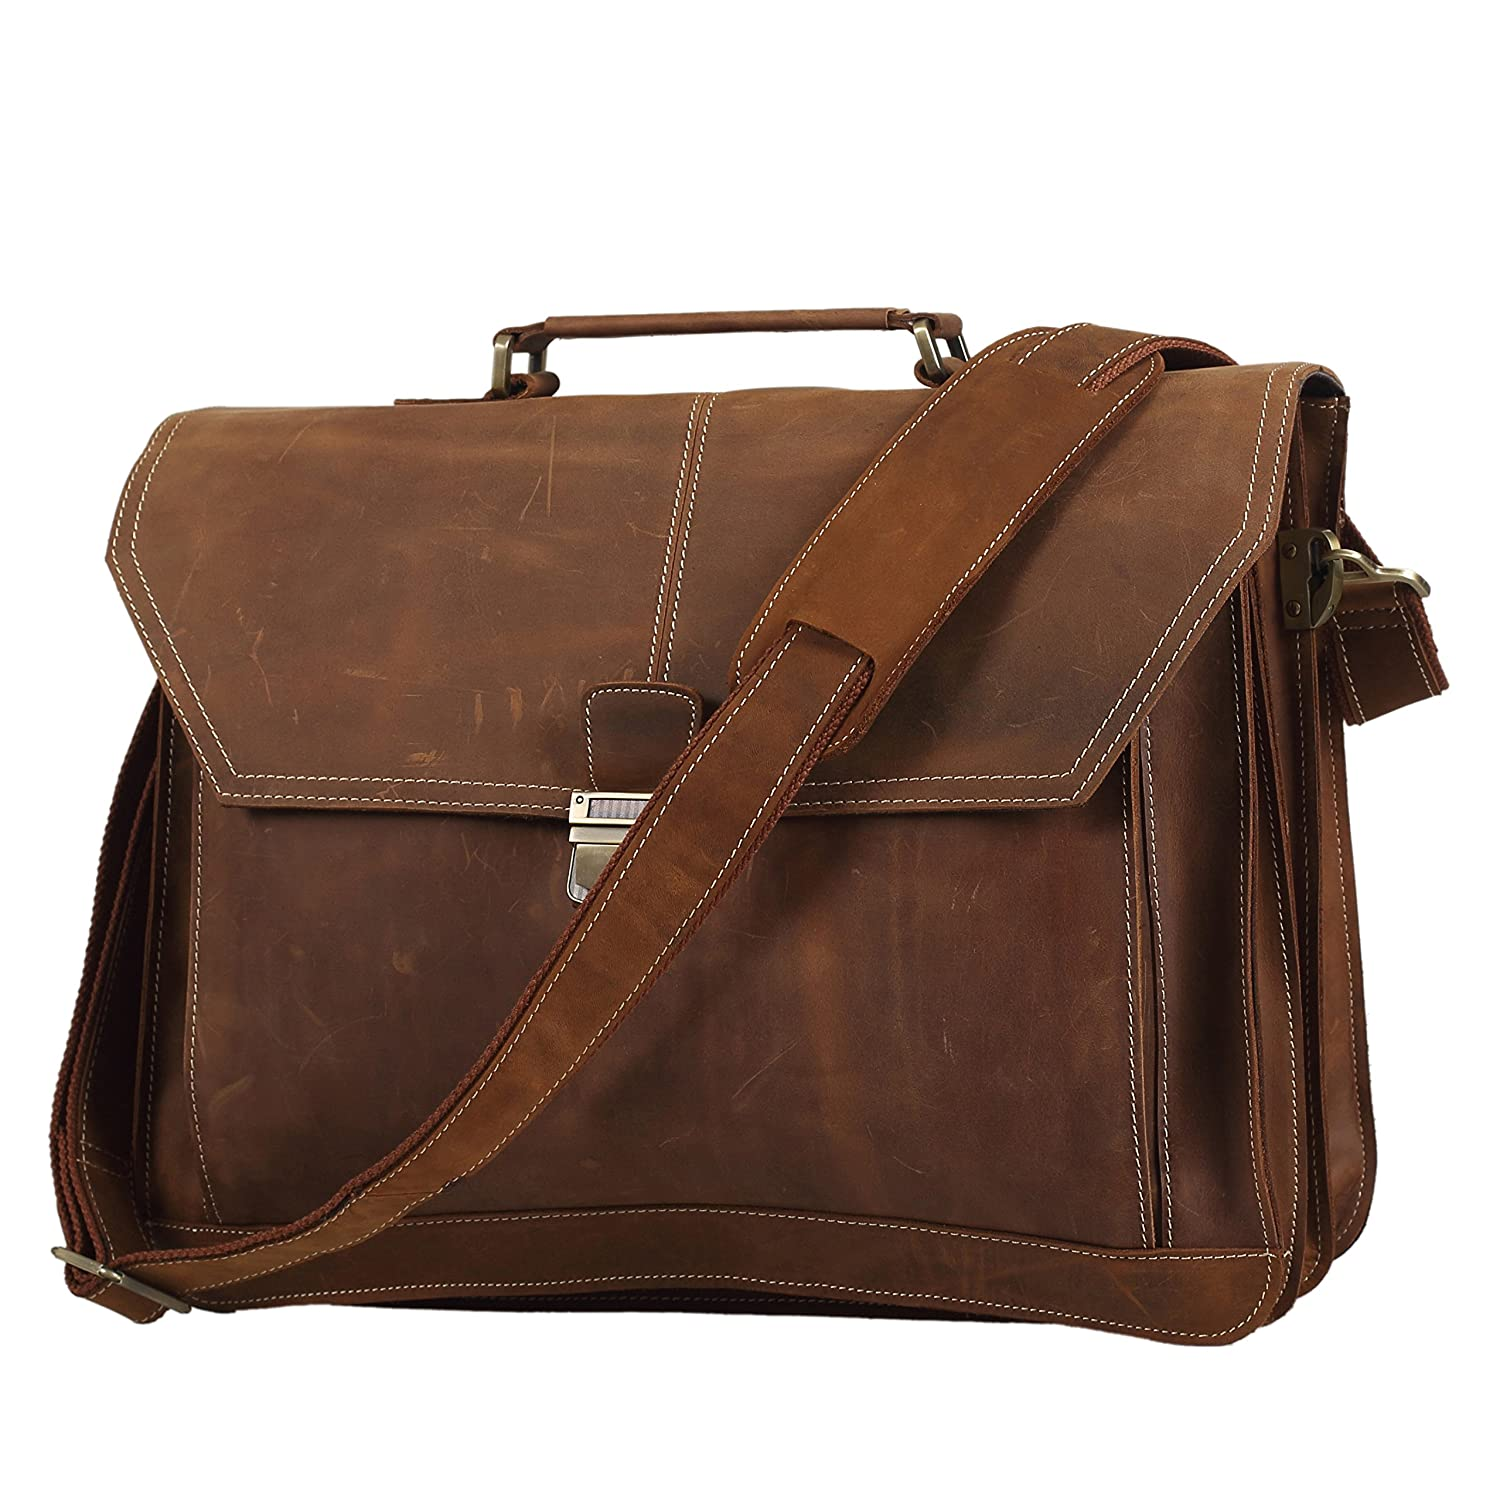 Texbo Mens Crazy Horse Leather Briefcase Messenger Bag Fit 16.5 Inch Laptop Tote